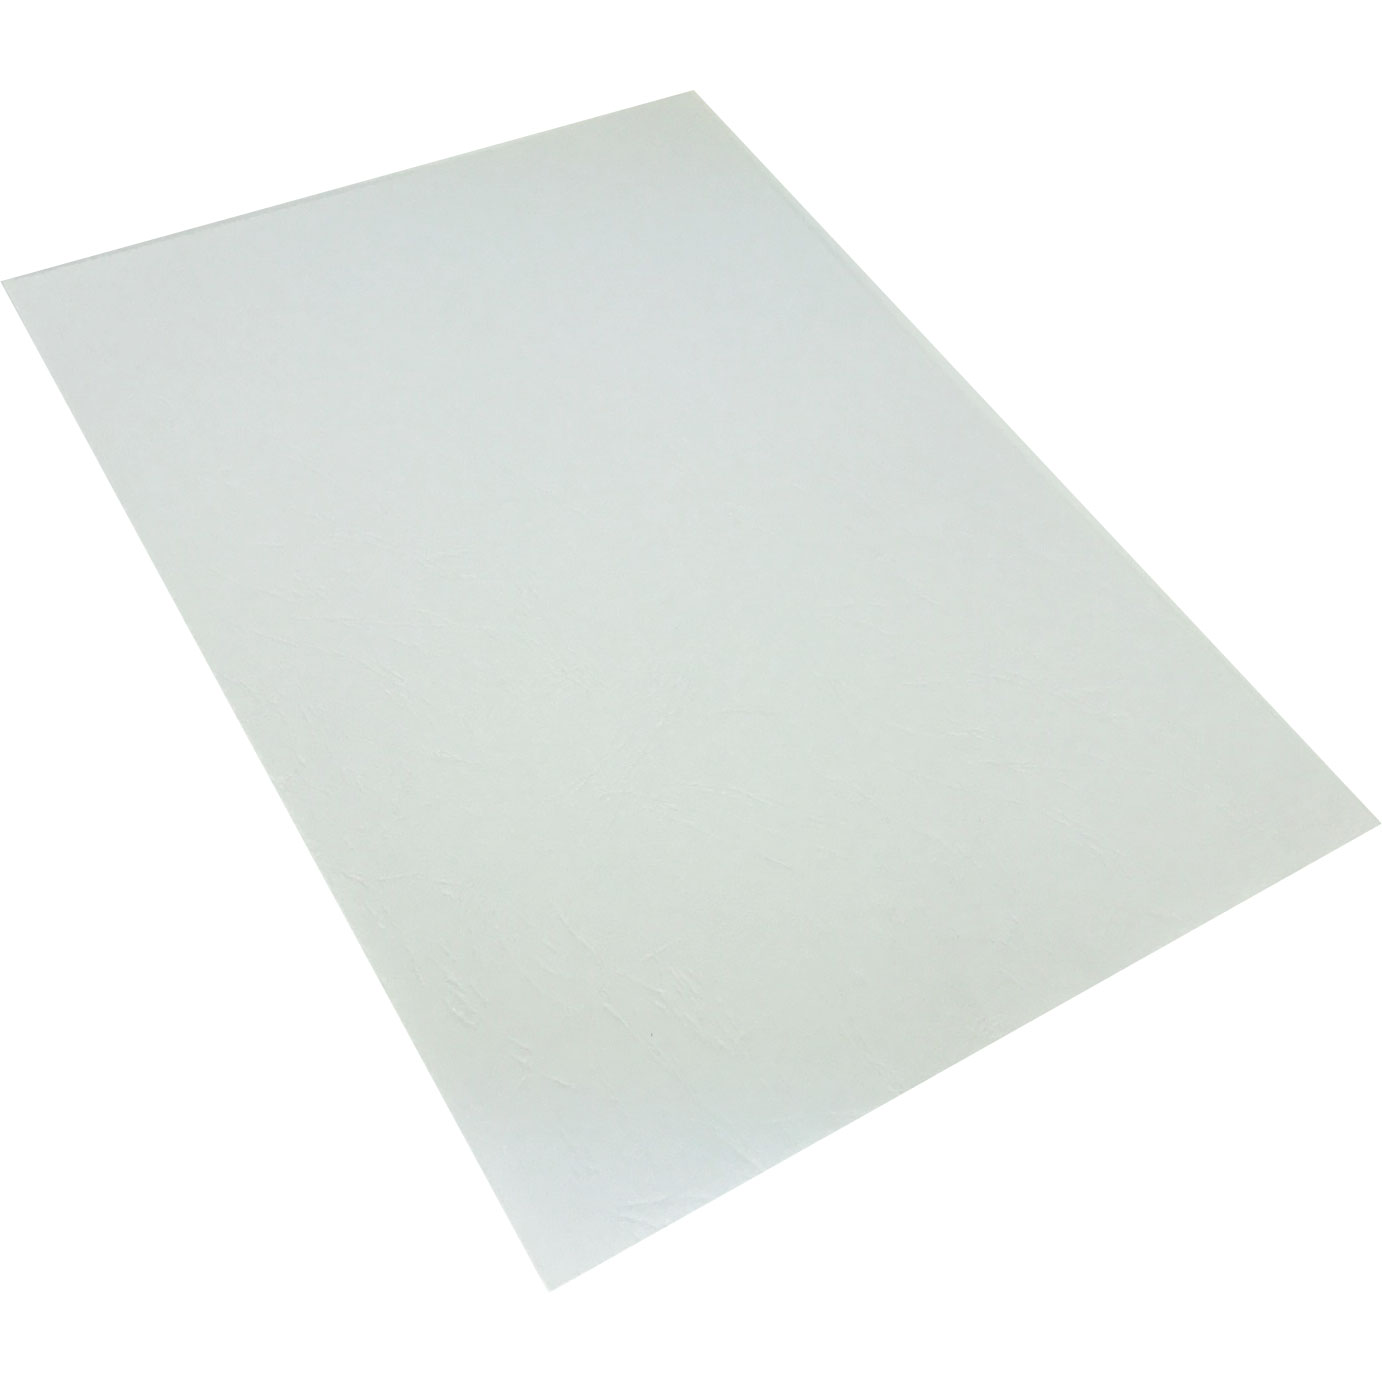 Leitz A4 White Leathergrain Binding Cover Boards (1000)